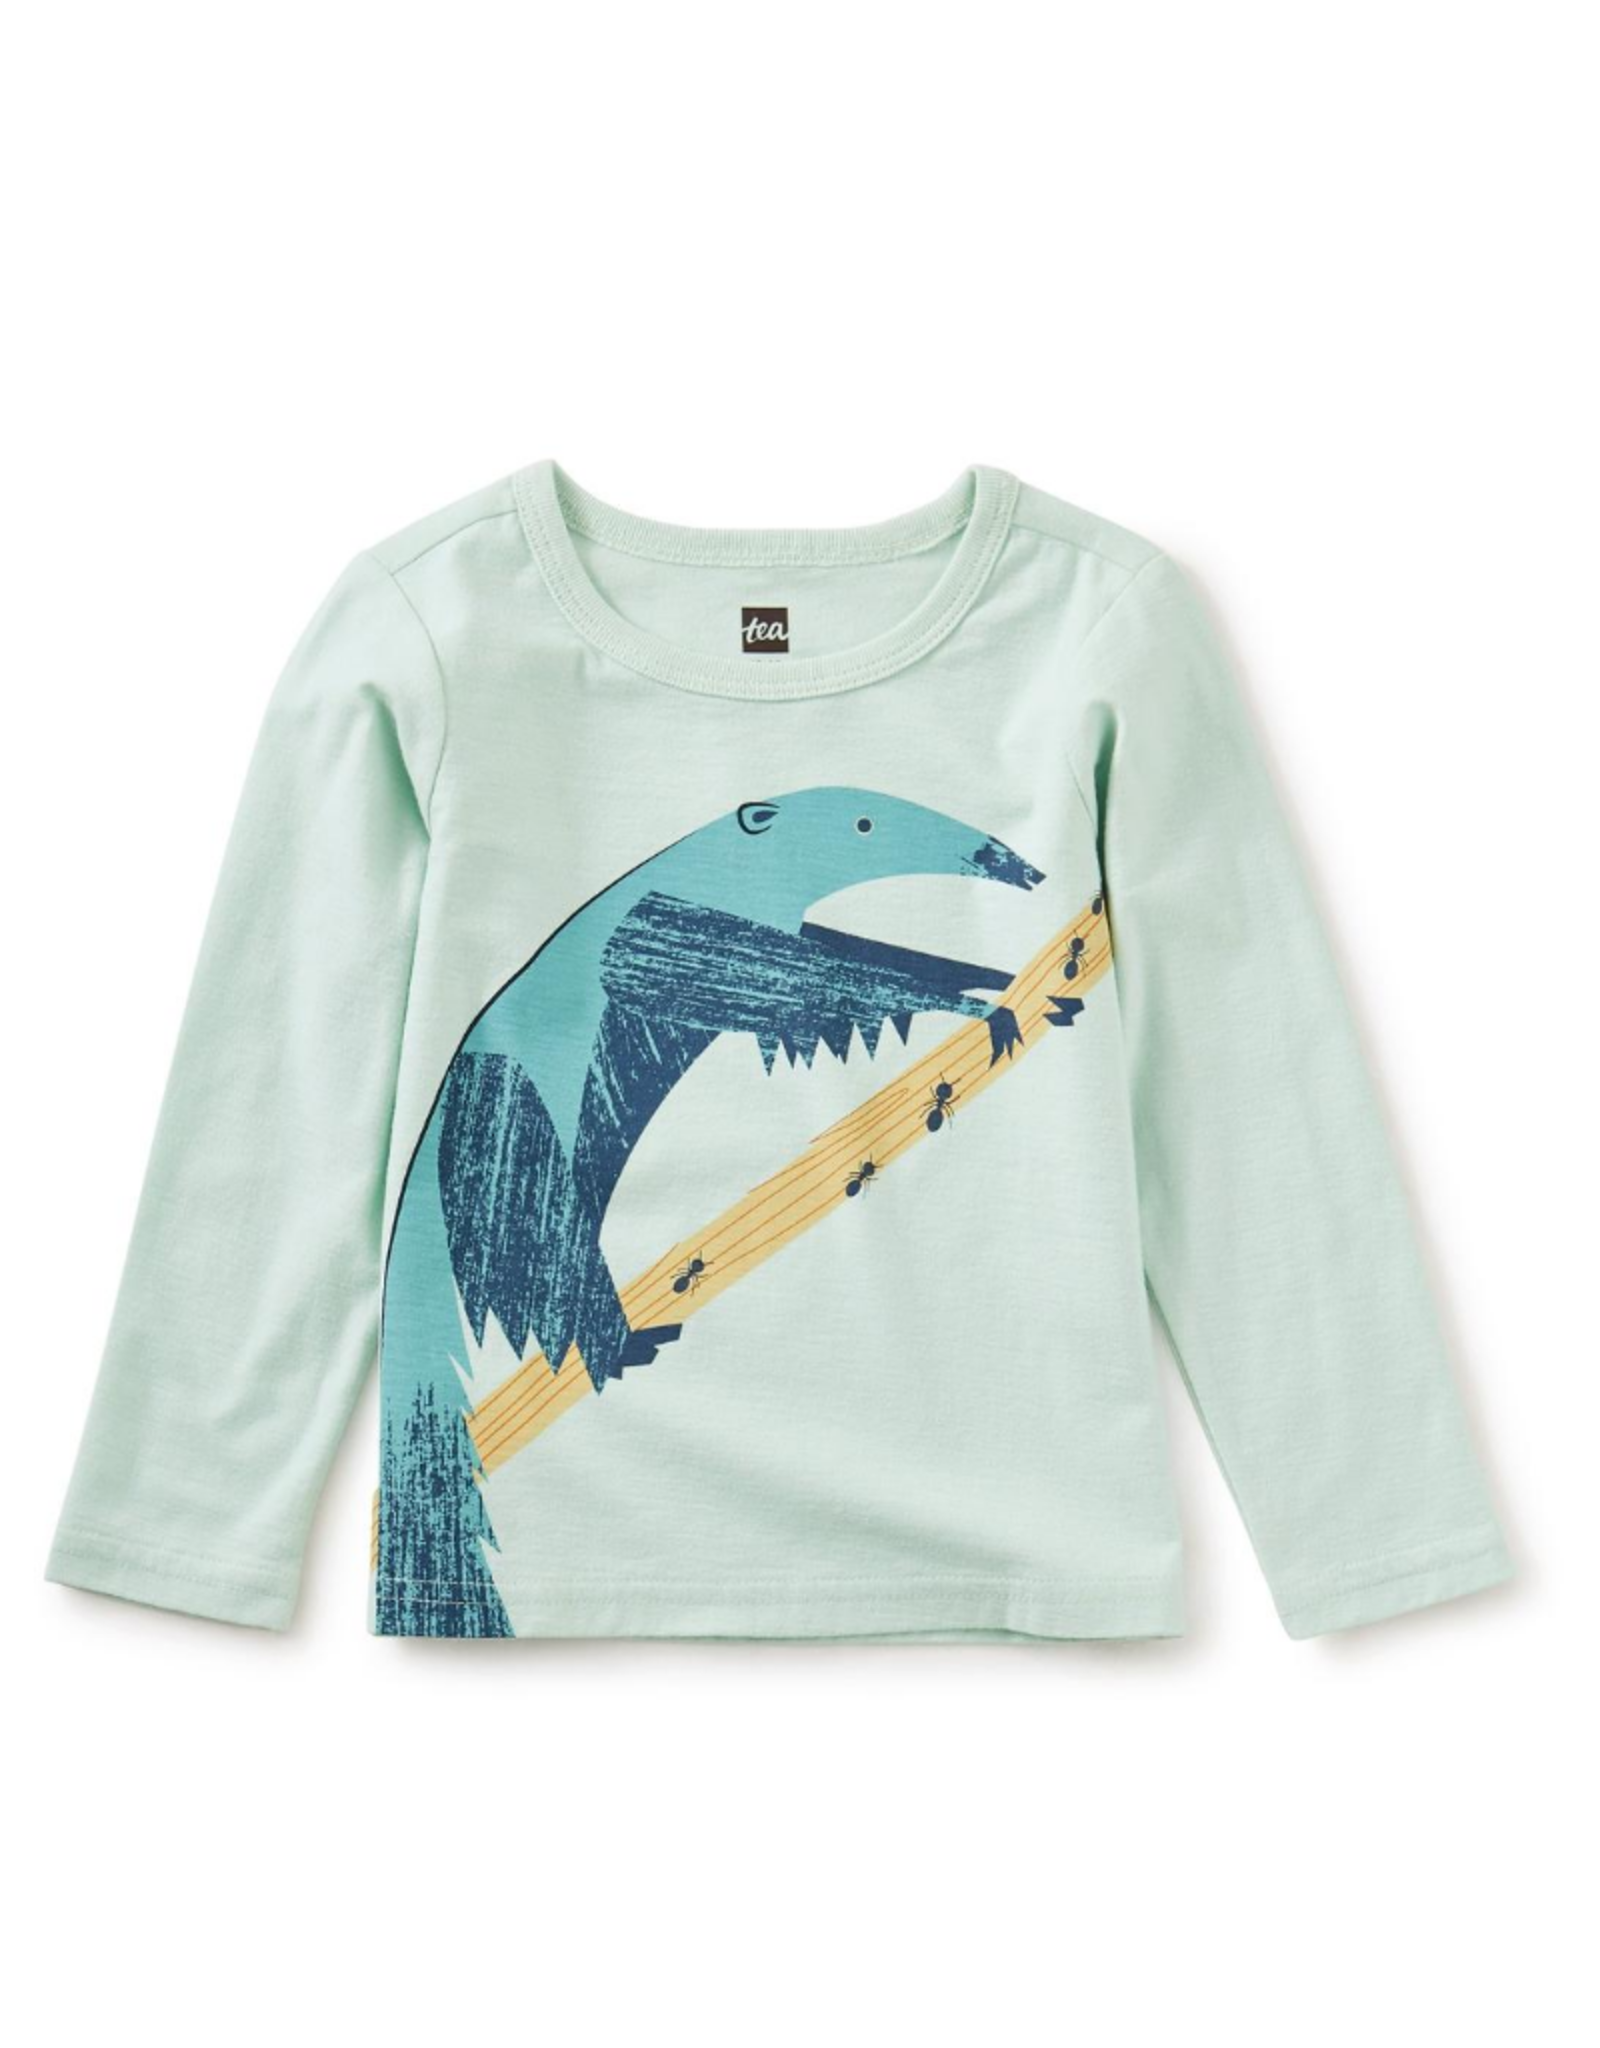 Tea Ambitious Anteater Graphic Tee